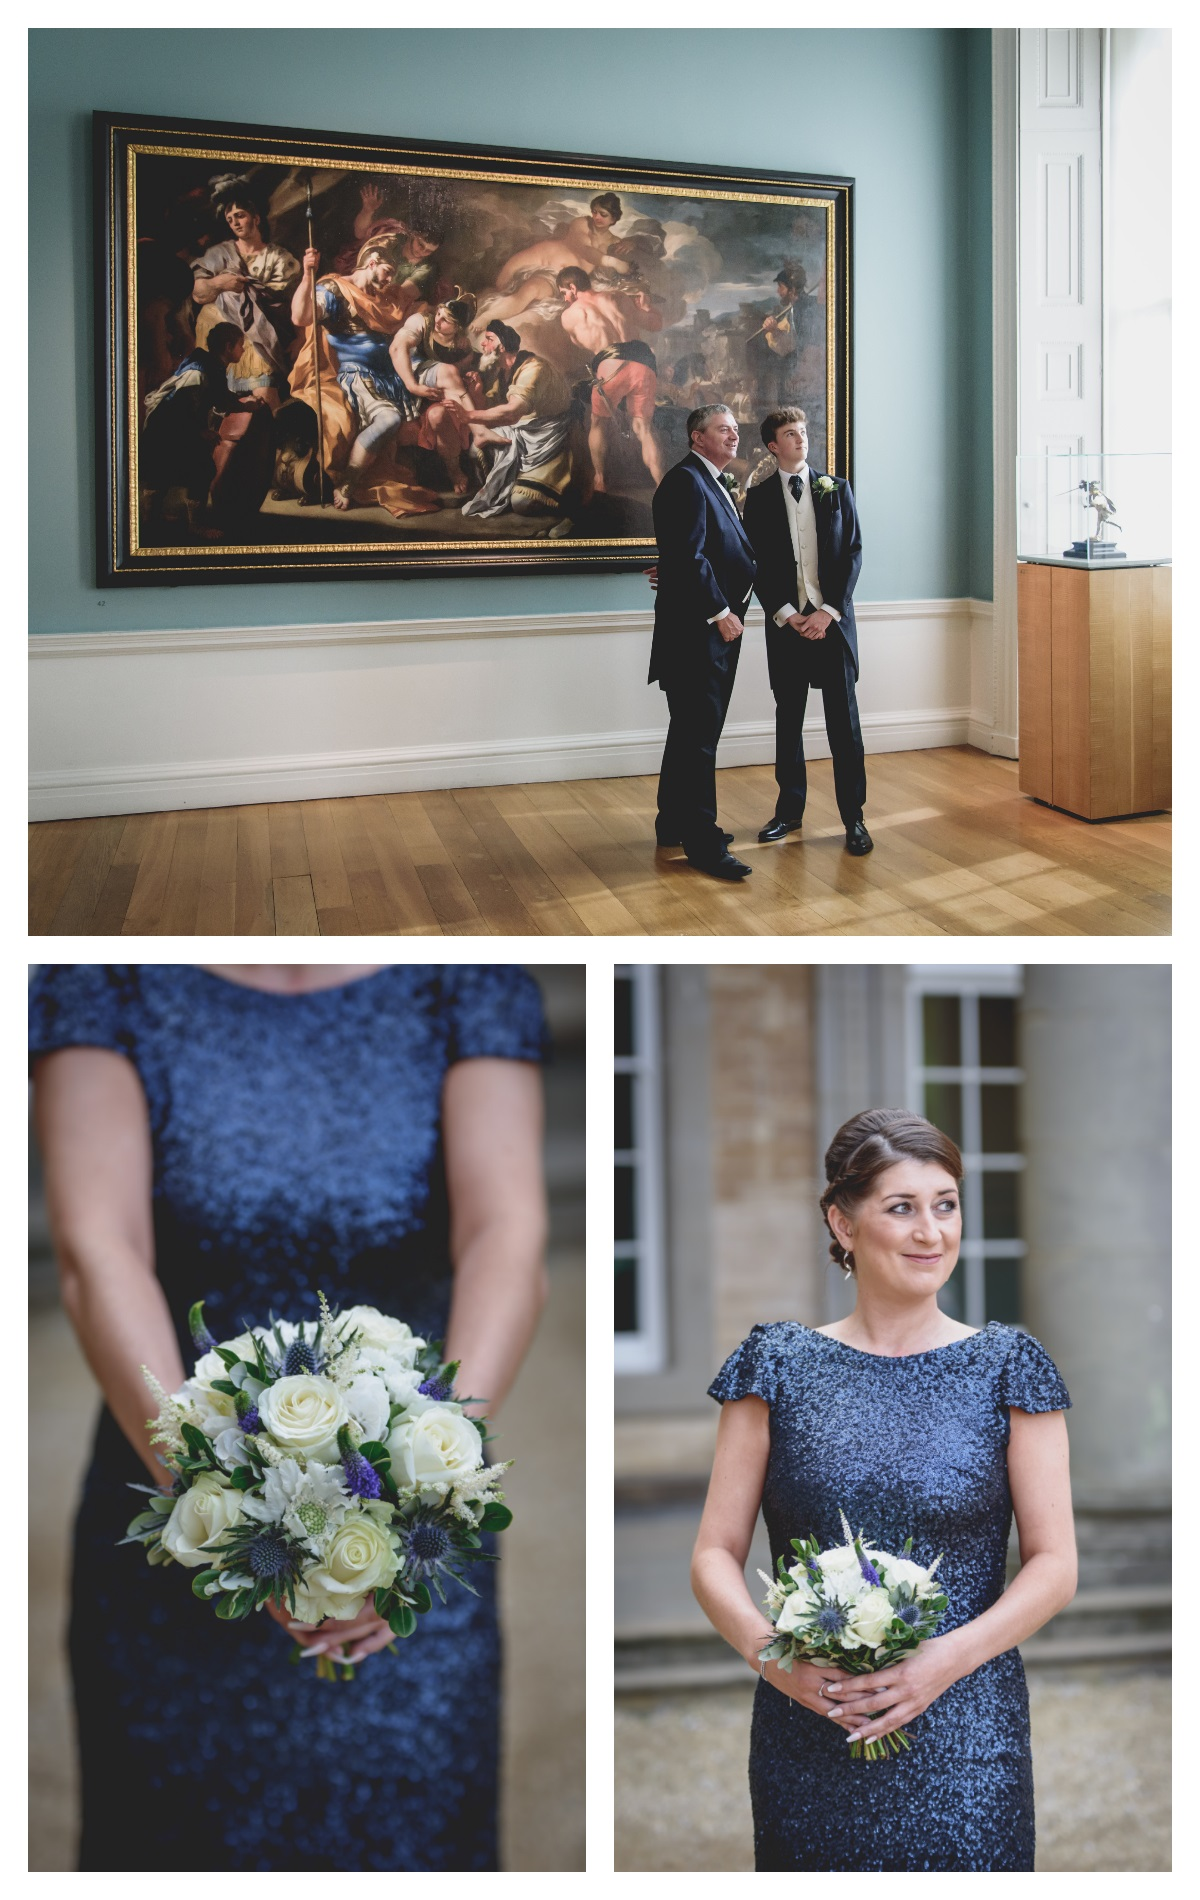 Compton Verney Wedding Photography by Chris Fossey Photography Claire 2